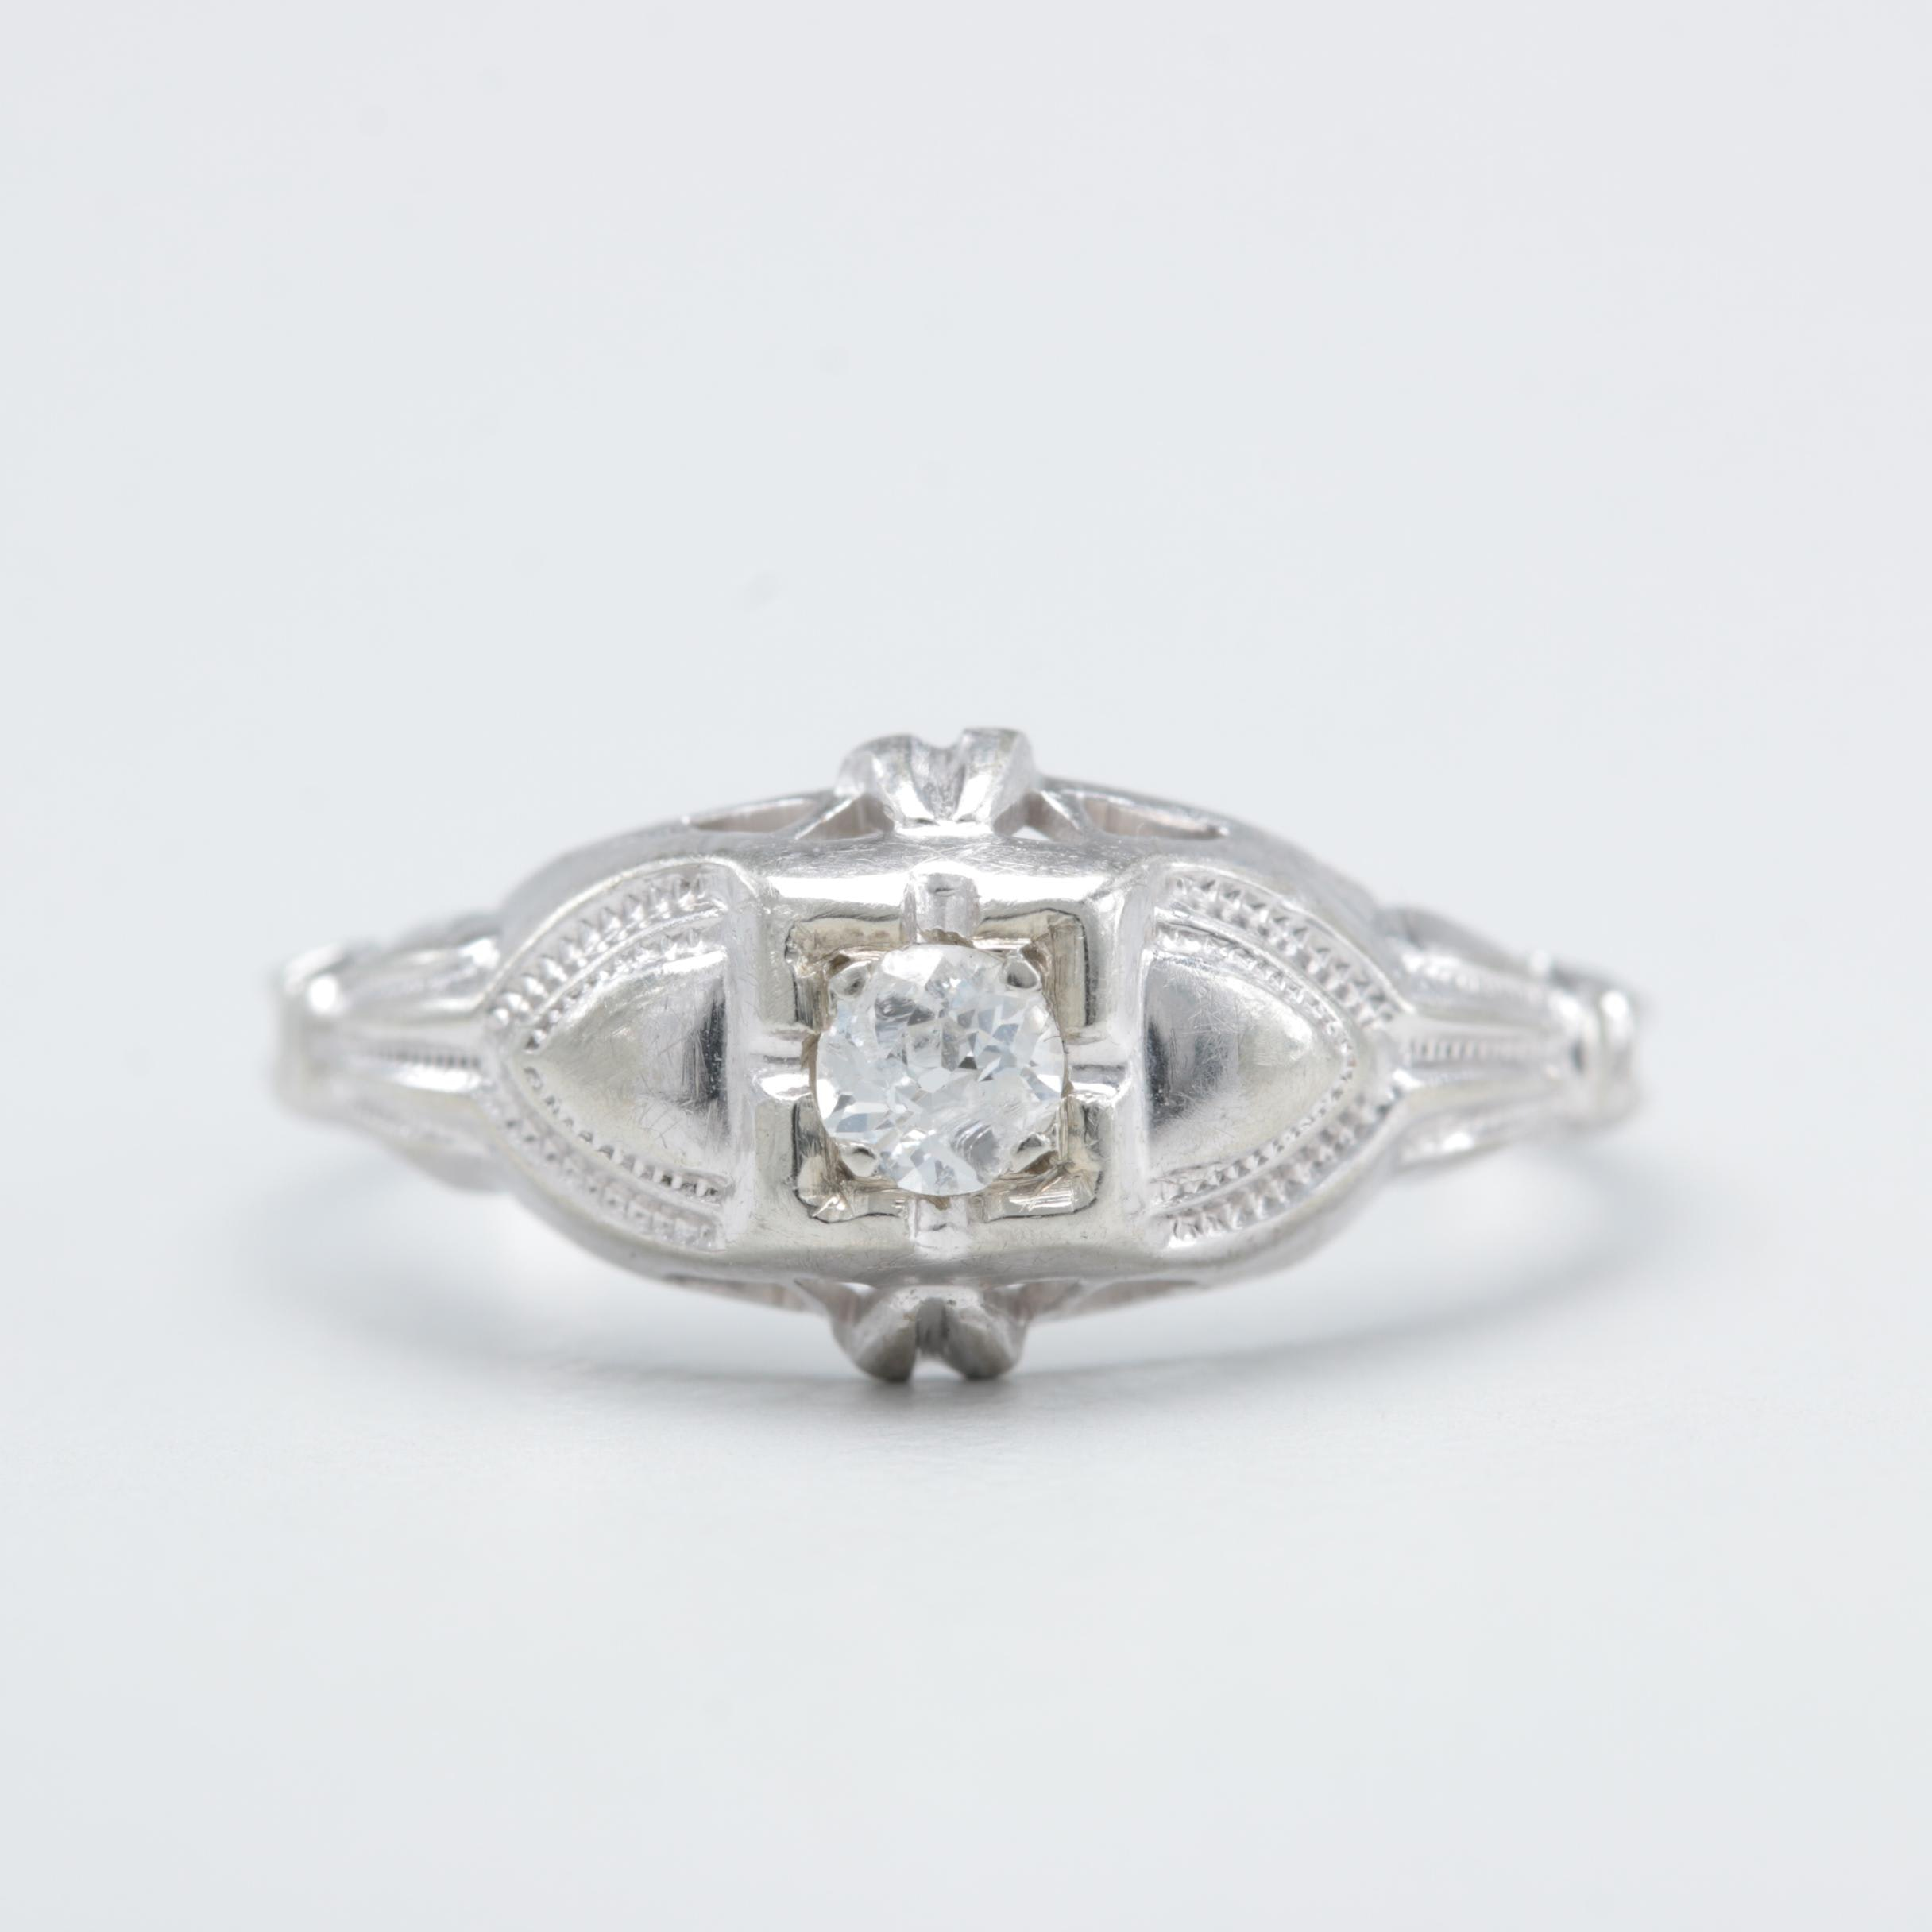 Circa 1930s 18K White Gold Diamond Ring